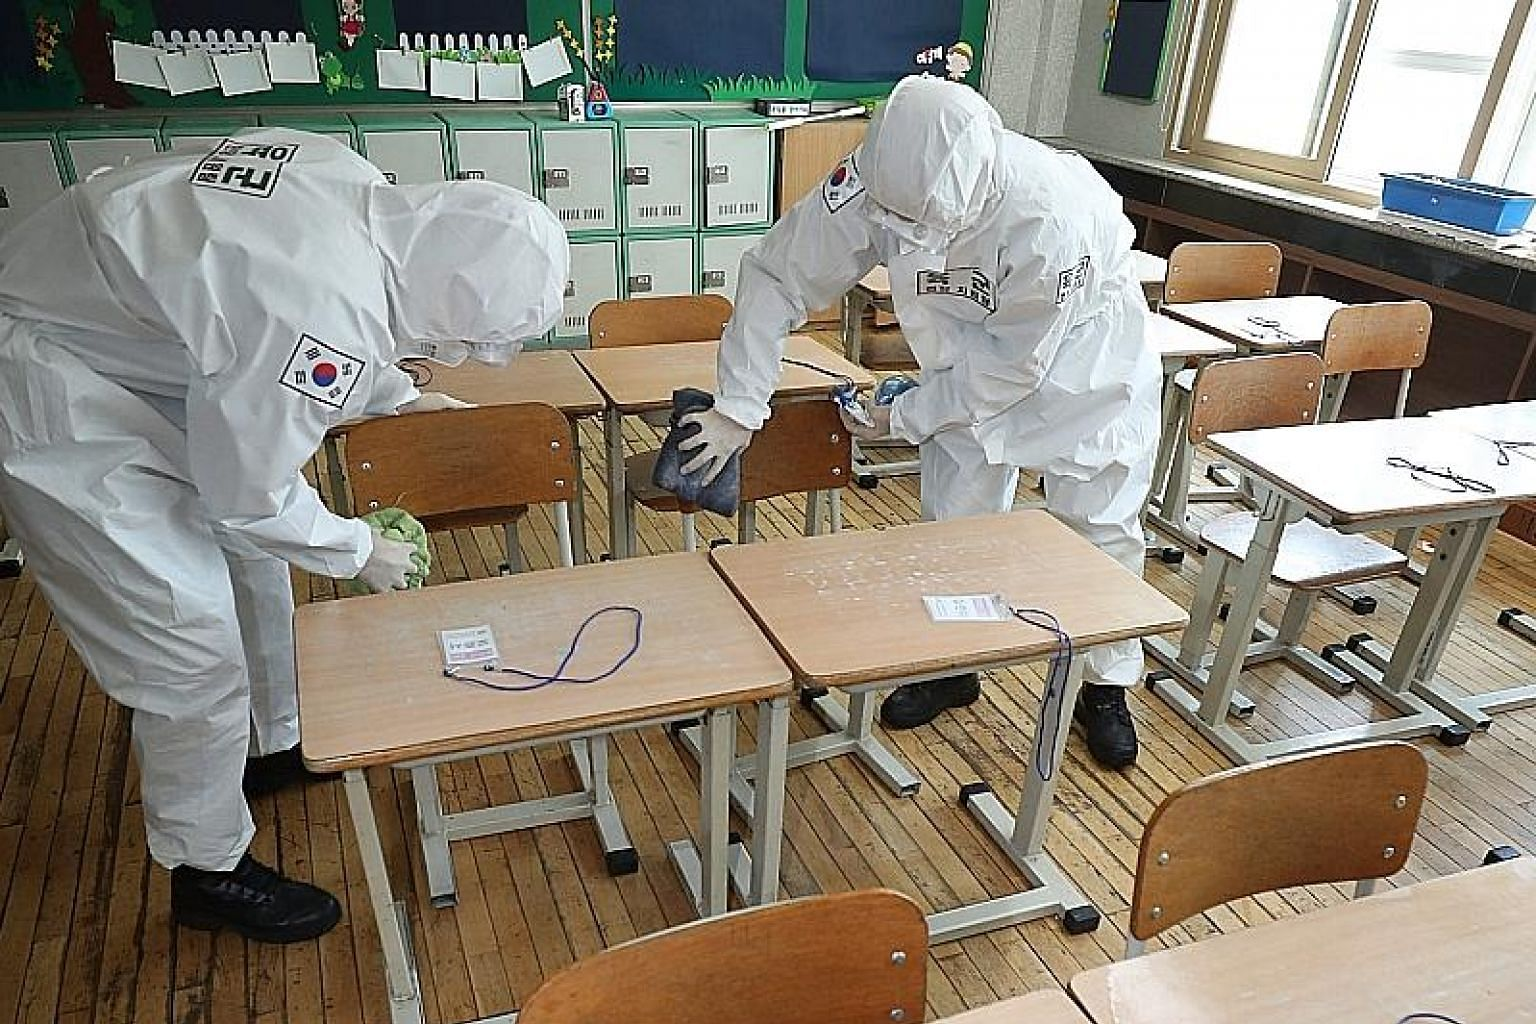 Army personnel disinfecting a classroom at an elementary school in Daegu, South Korea, last Friday. High school seniors will be the first to return to school on May 13, while the rest will follow in phases as schools reopen.